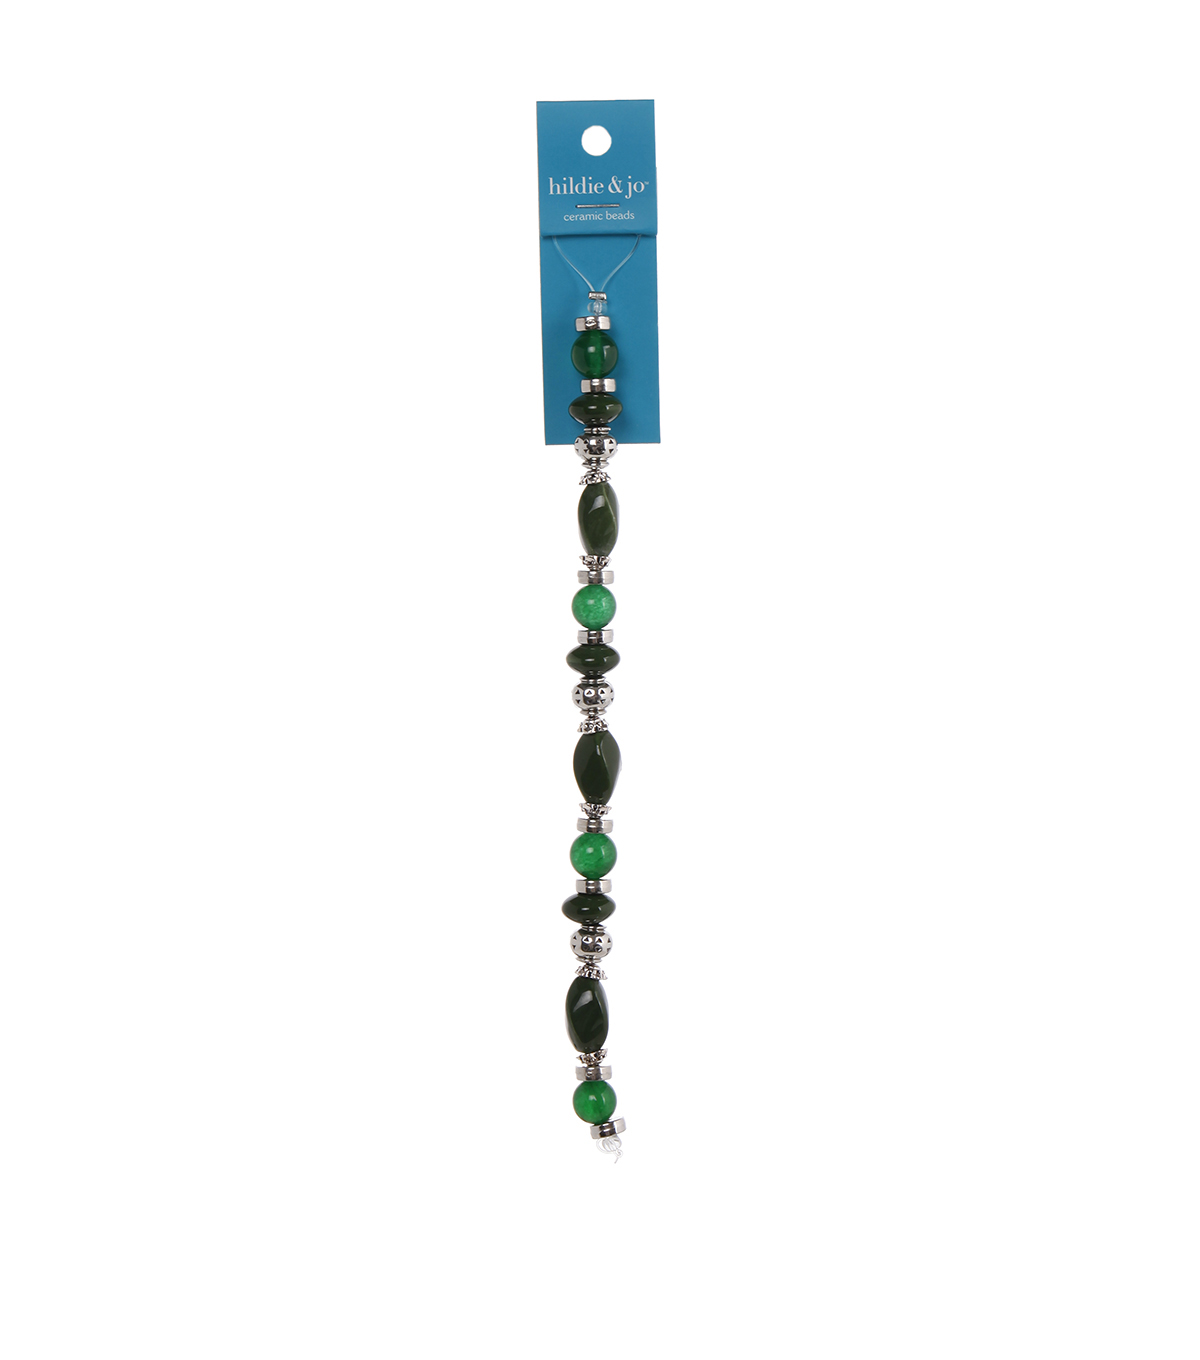 hildie & jo 7\u0027\u0027 Emeraude Strung Beads-Dark Green